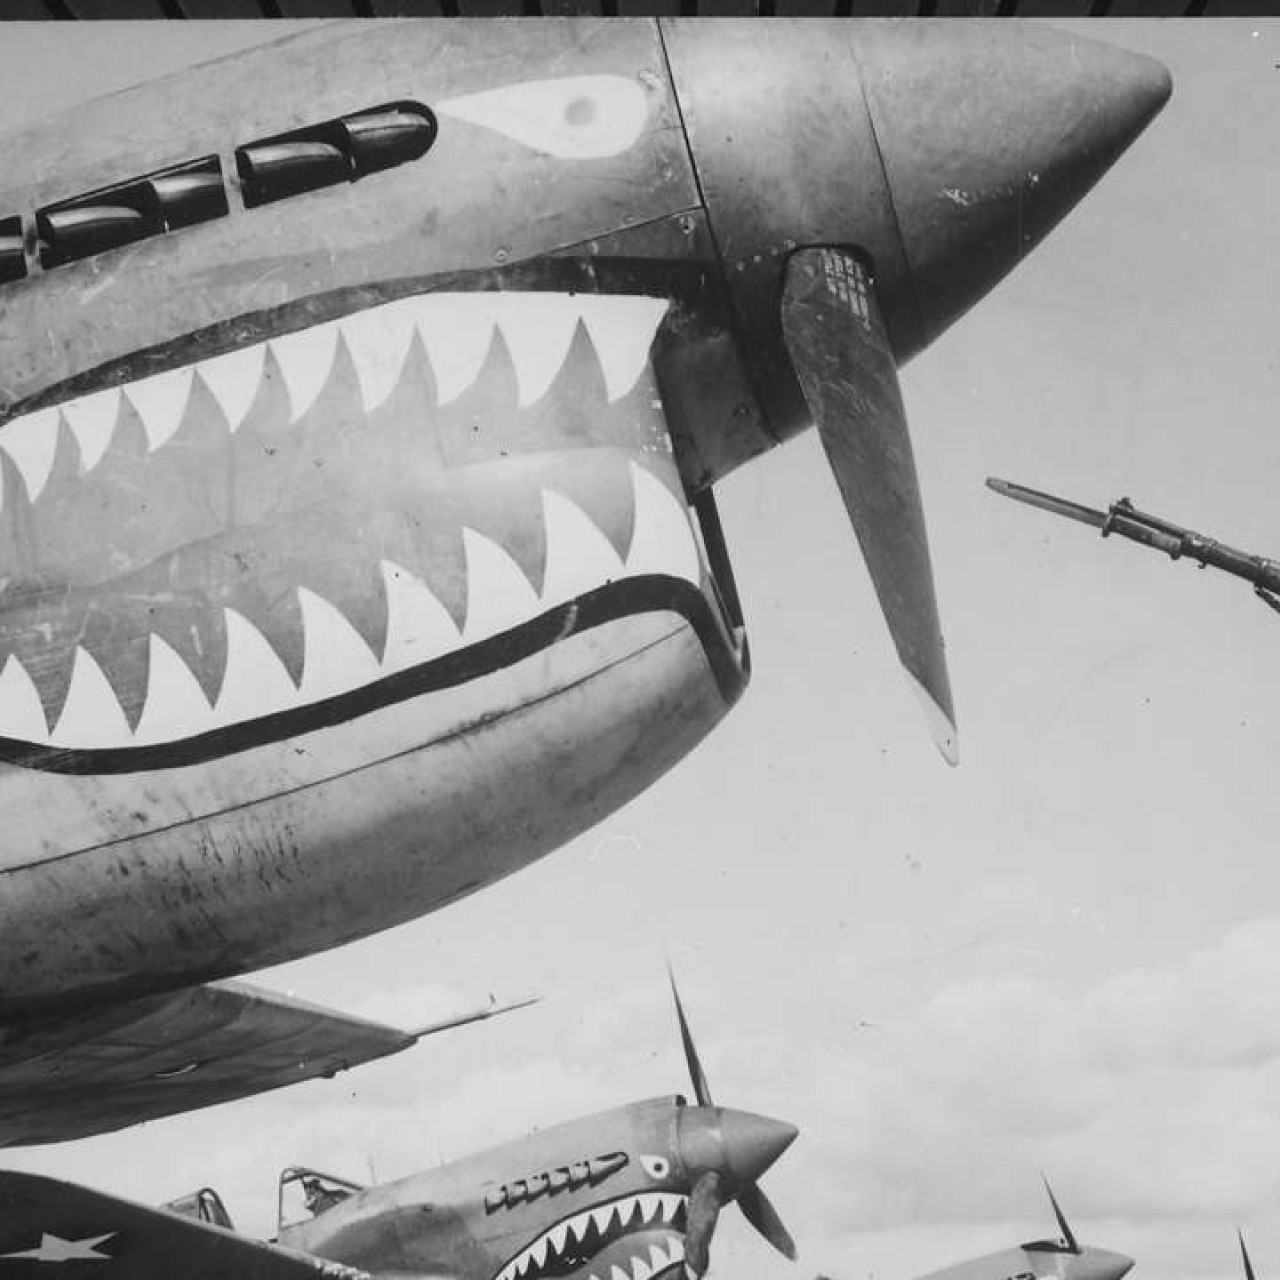 Book review: When Tigers Ruled the Sky vividly evokes Flying Tigers